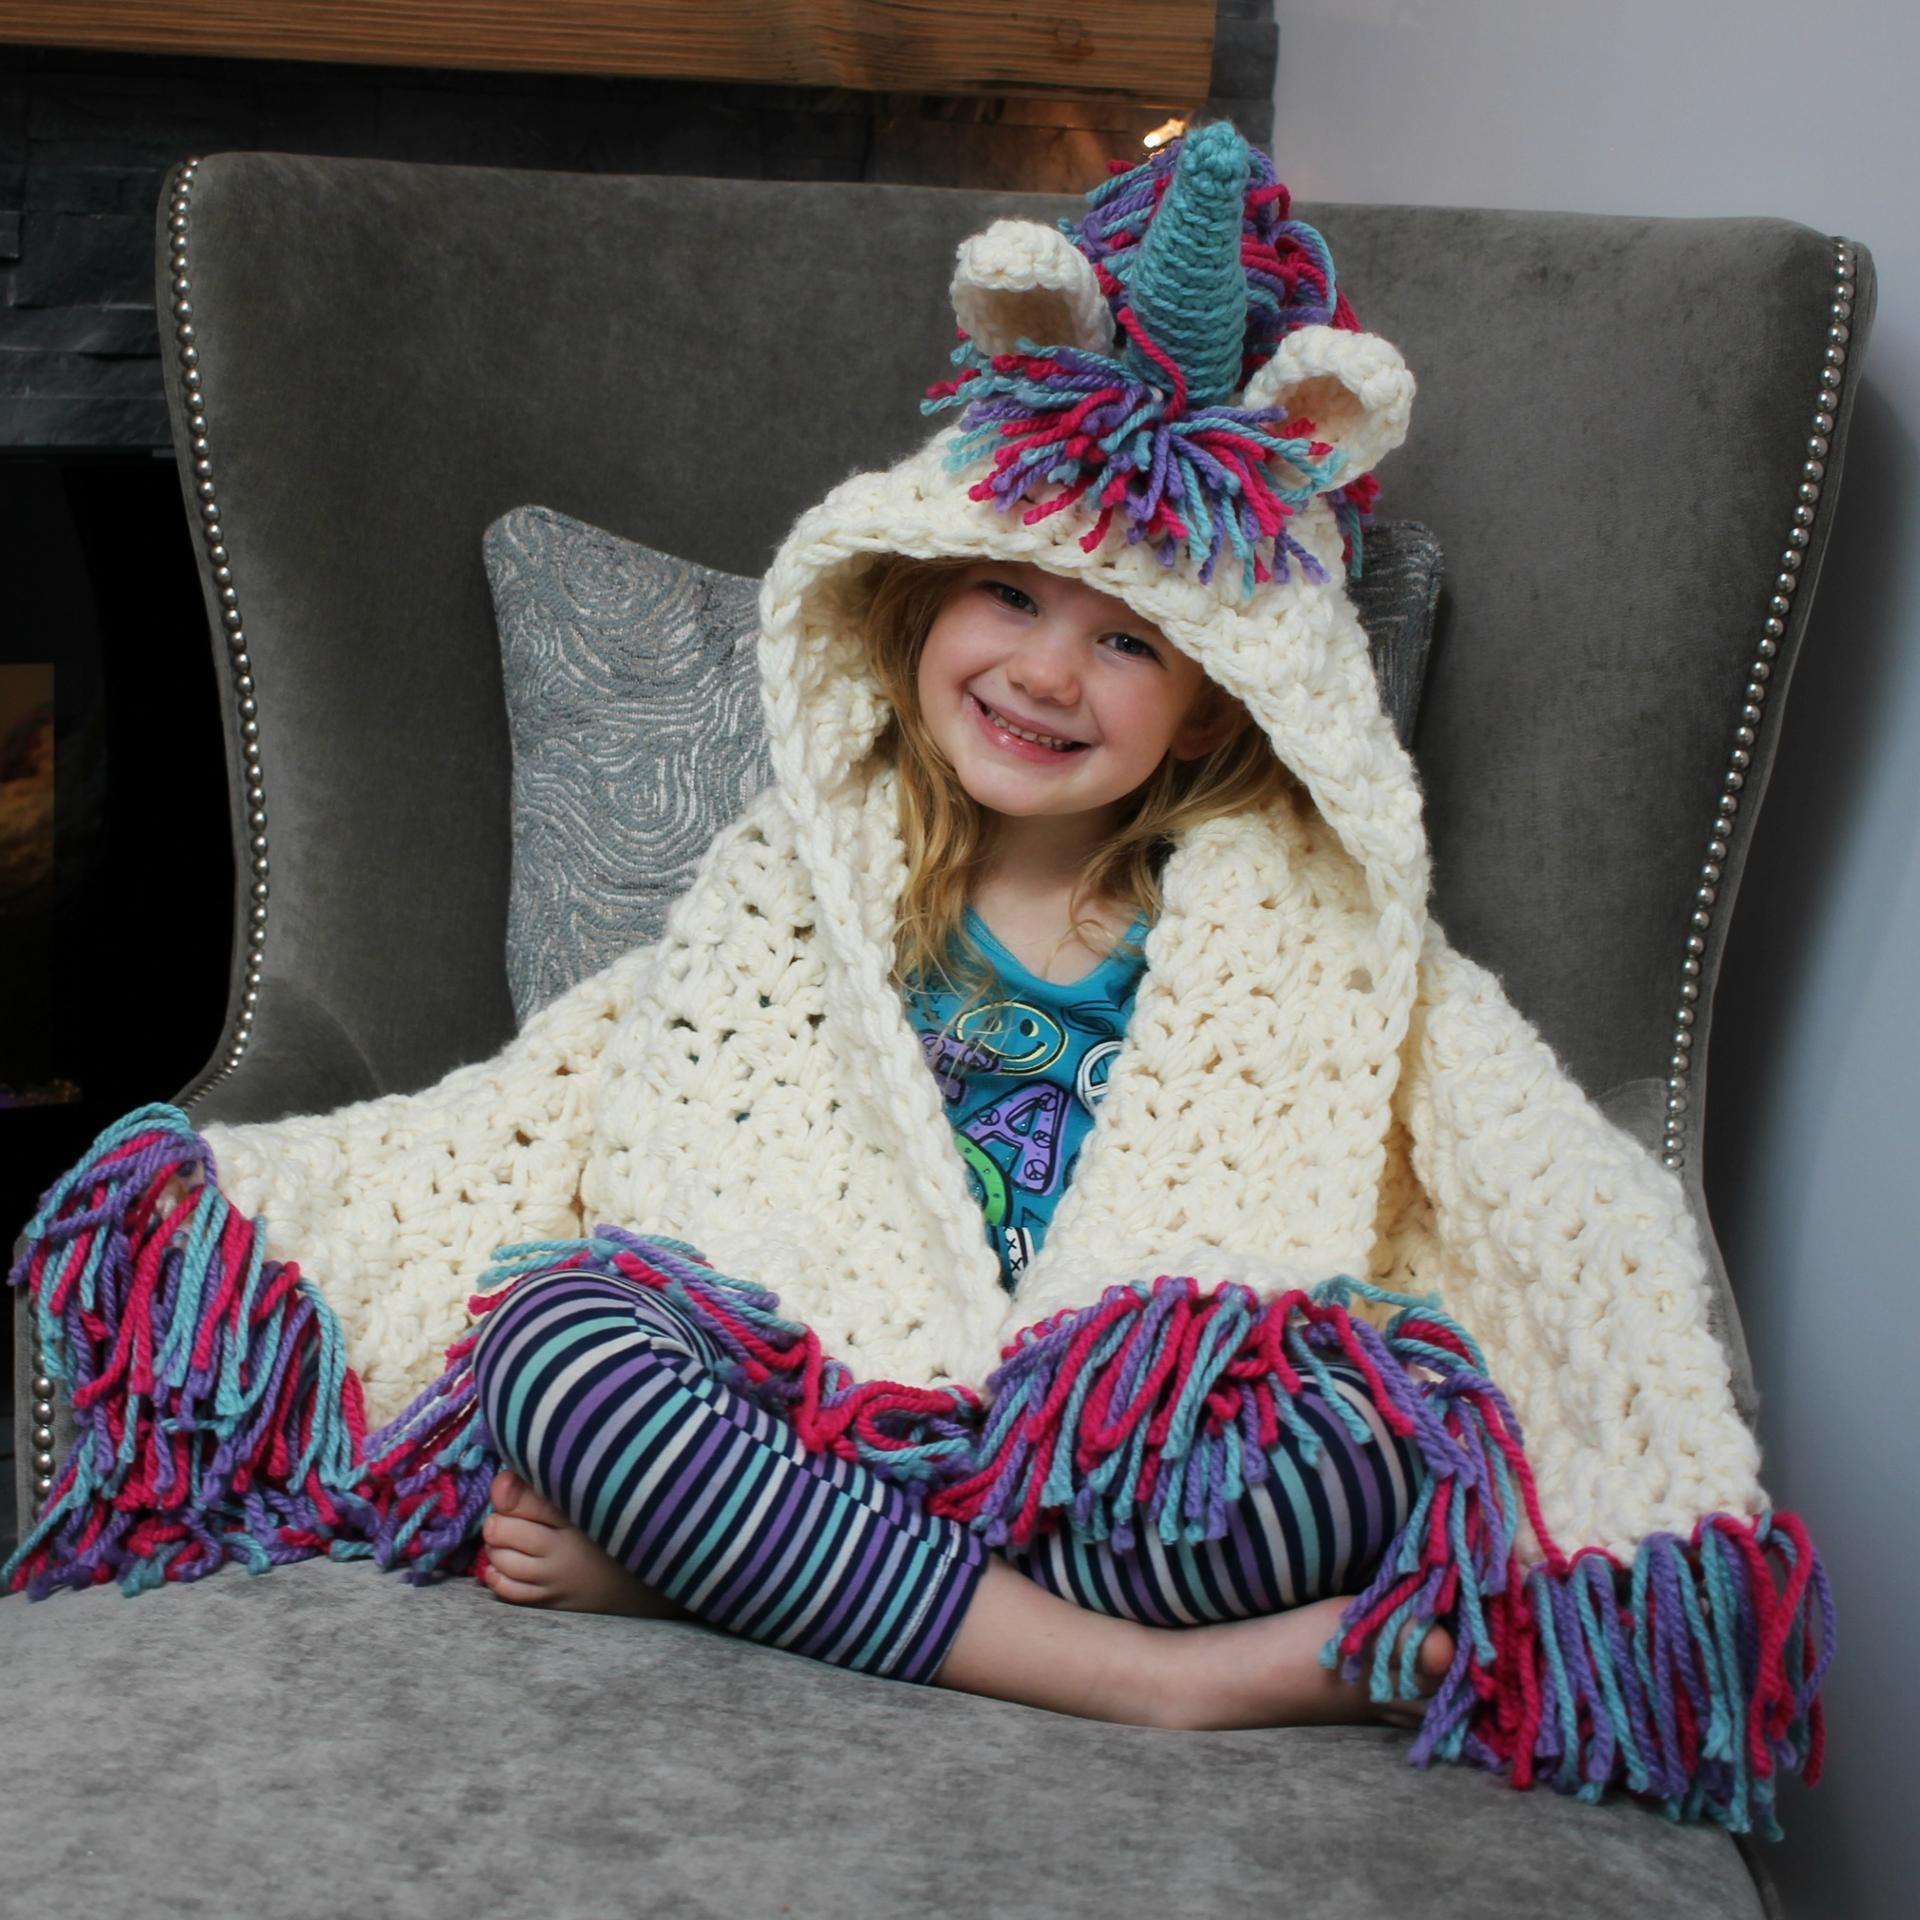 Hooded Blanket Pattern Awesome 10 Crochet Hooded Blanket Patterns for Kids and Adults Of Marvelous 46 Pics Hooded Blanket Pattern